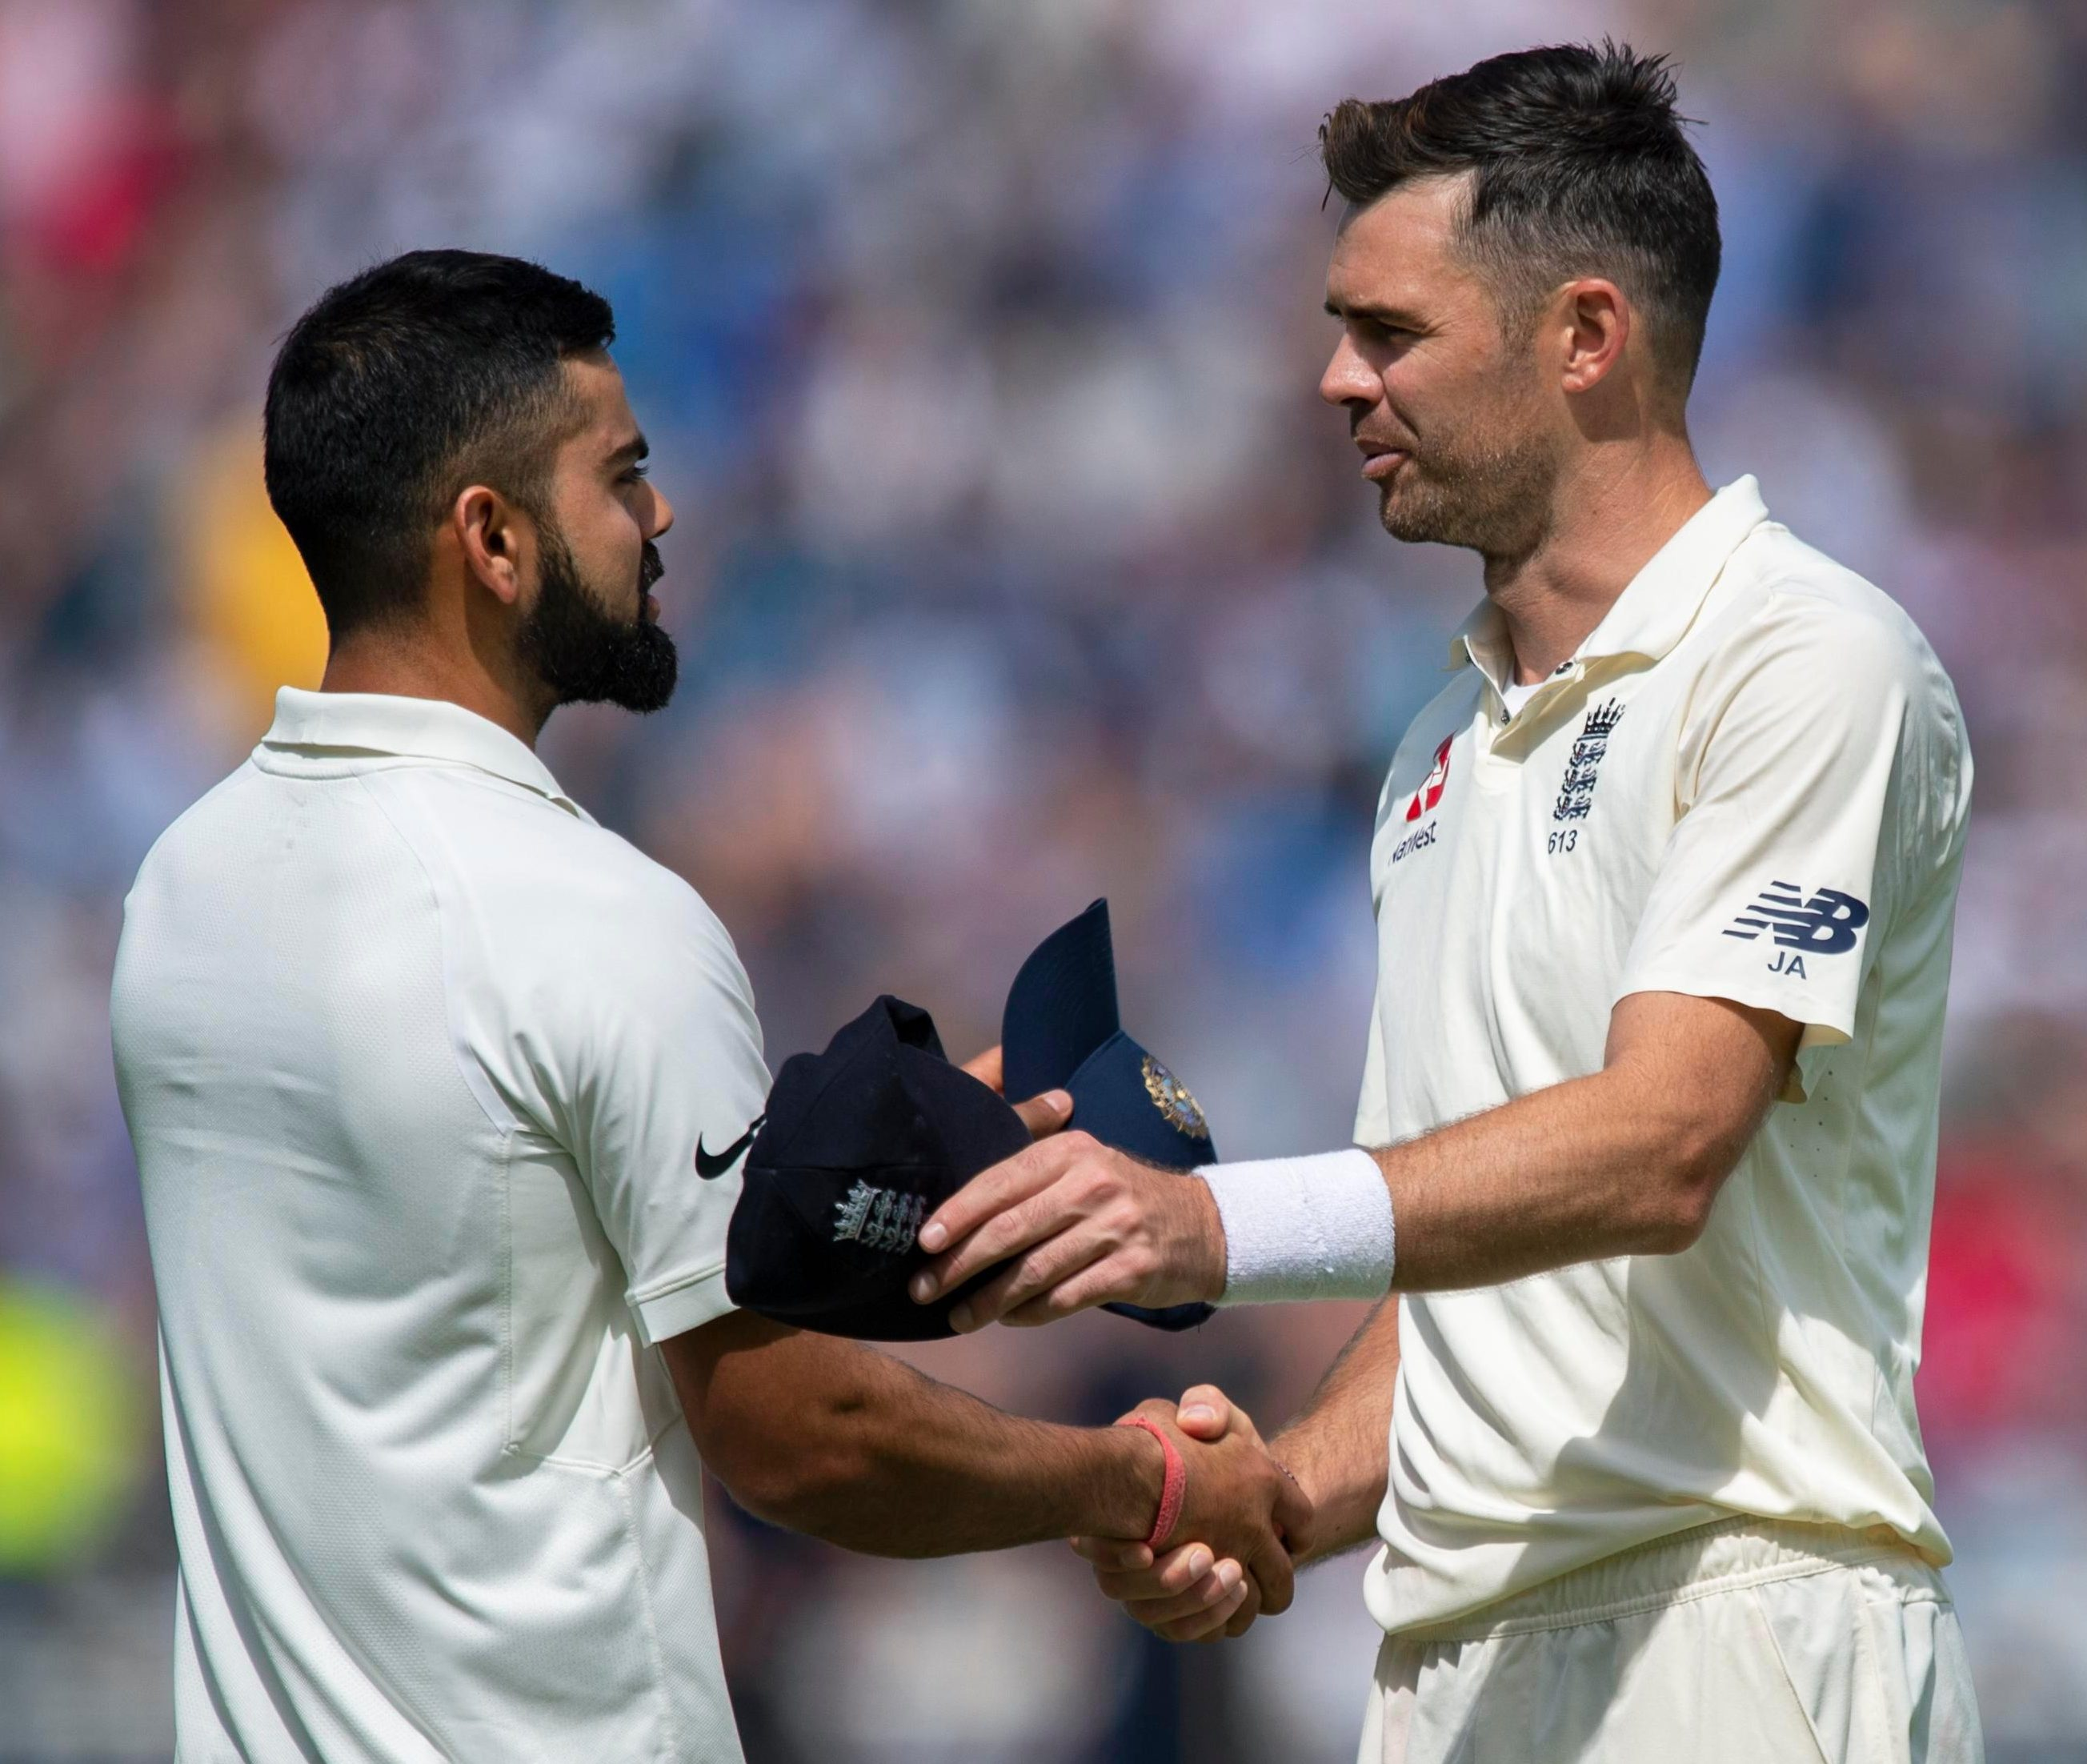 James Anderson and India captain Virat Kohli show their respect after England win a thrilling opening Test at Edgbaston